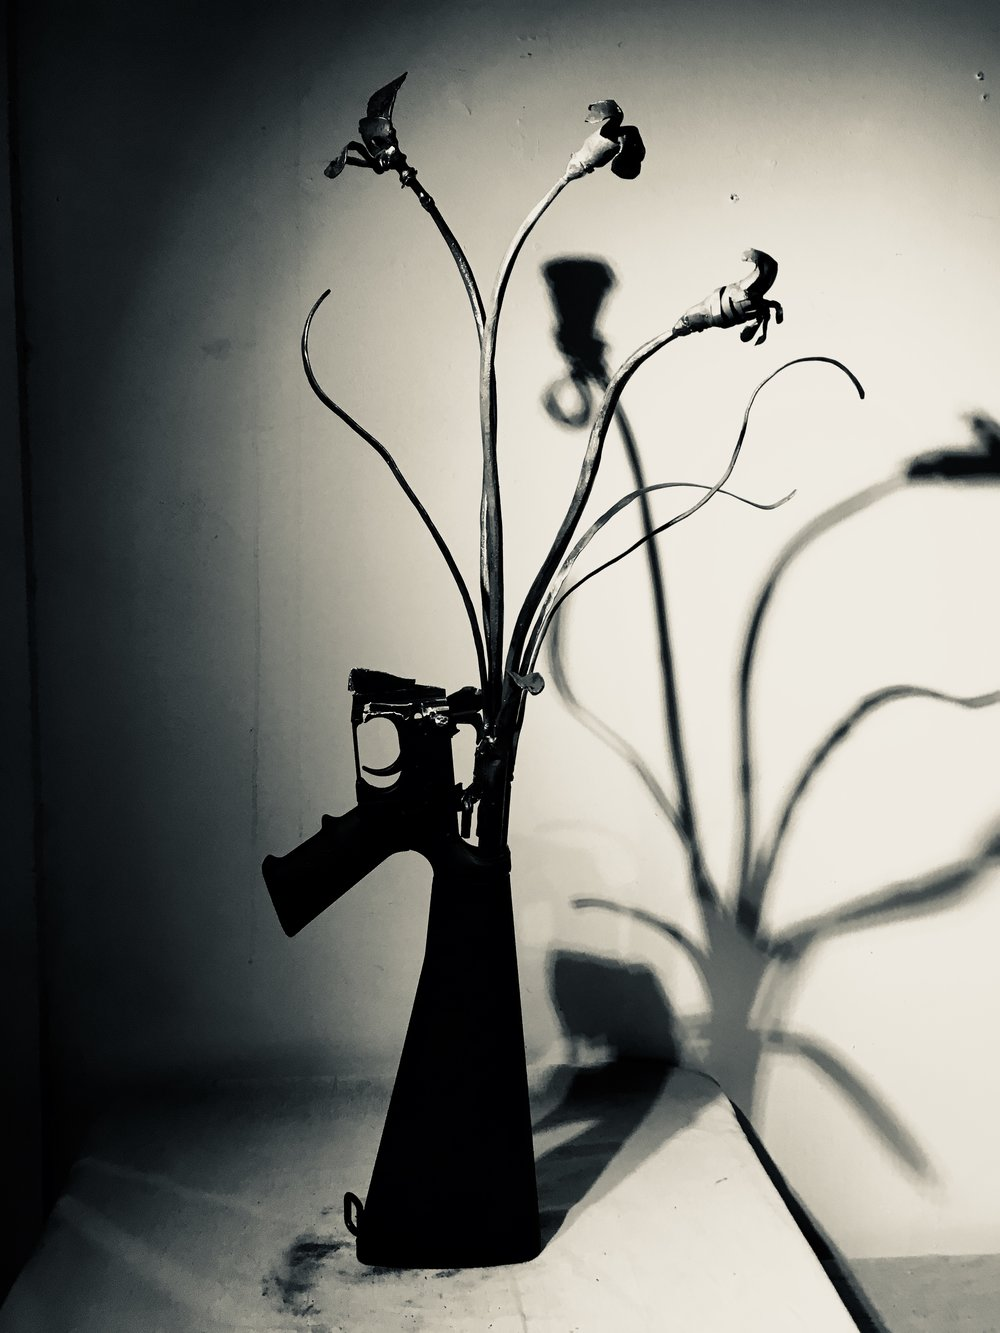 "AR-15 BOUNTIFUL BOUQUET #1     We have created Guns into GARDEN TOOLS for a CHURCH as part of their Ceremony, and later  with DASHBOARD CO OP fro the exhibition at the Marcia Wood Gallery for the Show called UNLOADED  http://www.dashboard.us/unloaded  UNLOADED PROGRAMMING      INTERACTIVE BLACKSMITHING DEMO WITH  CORRINA SEPHORA // PRESENTED BY DASHBOARD     On 5/10/17, Dashboard hosted a contemporary blacksmithing demonstration and performance by Corrina Sephora at Marcia Wood Gallery. During the demonstration, Corrina transformed a gun into a garden tool using contemporary blacksmithing practices, allowing the audience to interact and assist as ""stikers"" in the process.    Artist Statement: ""This act illustrates the old saying 'swords into plough shares' by transforming 'guns into garden tools'. This transformation is an act of creativity from a tool of death and destruction. The creation and transformation of one tool (the gun) into another tool (the garden tool) through fire and forging. Using the four elements the blacksmith in ancient history was once considered a diviner, healer, judge and even a sorcerer, as well as one who made functional objects, sculptures, divination tools, and farming tools. This contemporary interactive performance and teaching session is statement of peace, creativity and community. The interactive work allows people to put their life force, energy or NYAMA into this transformational forging experience.""   --Corrina Sephora"